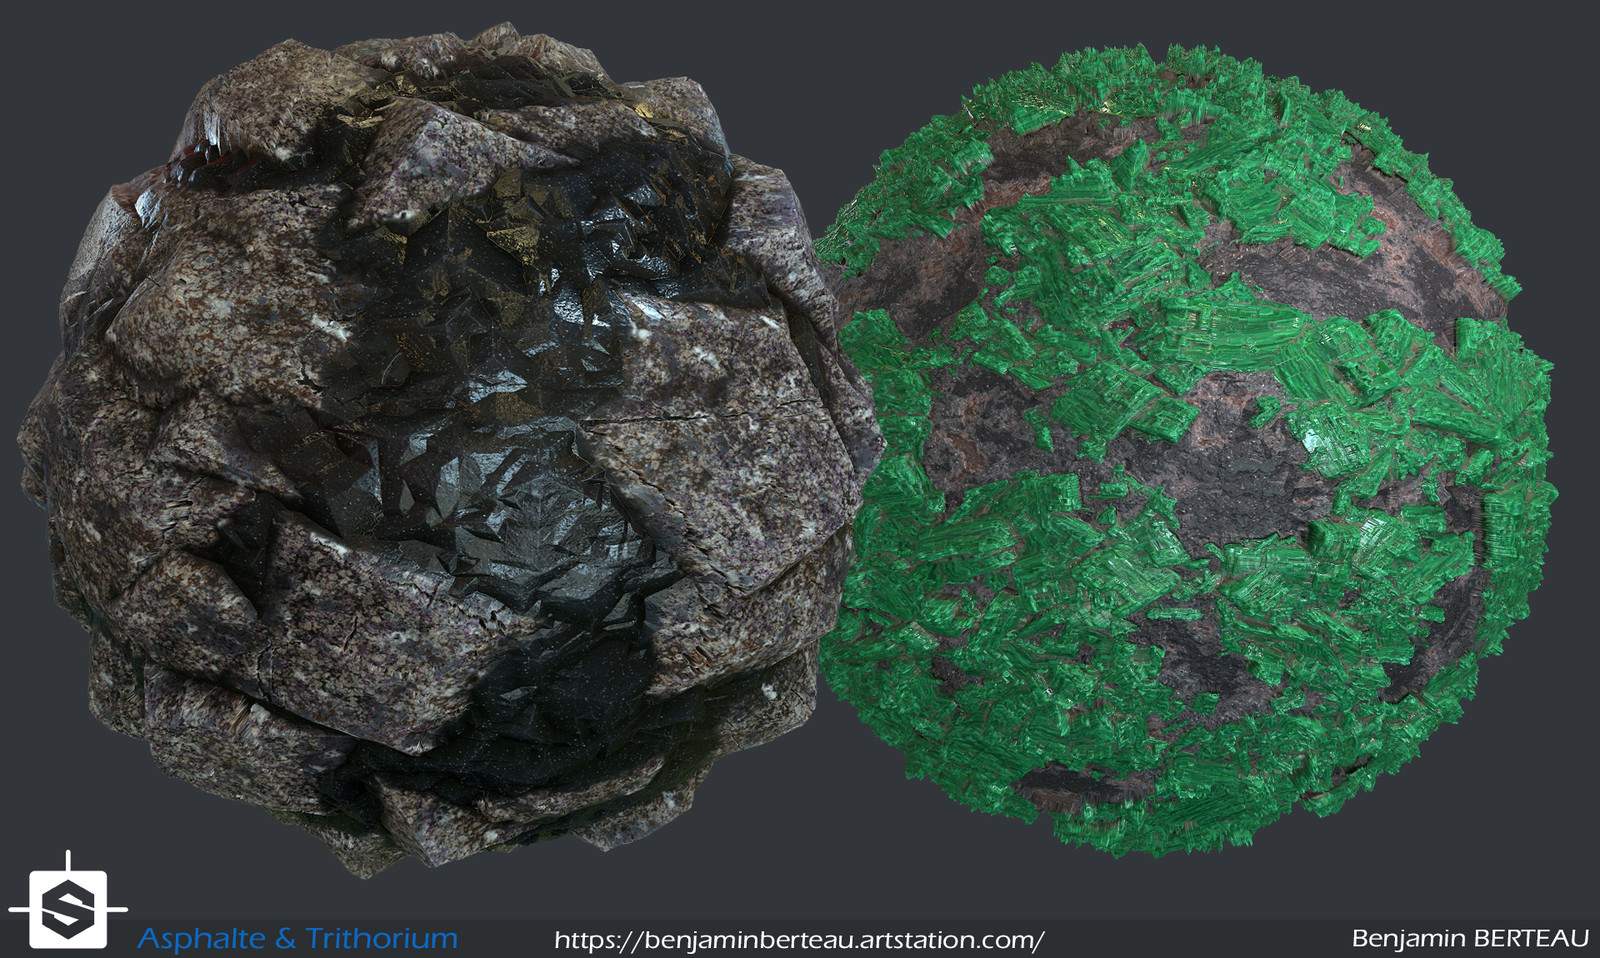 Asphalte and trithorium ore